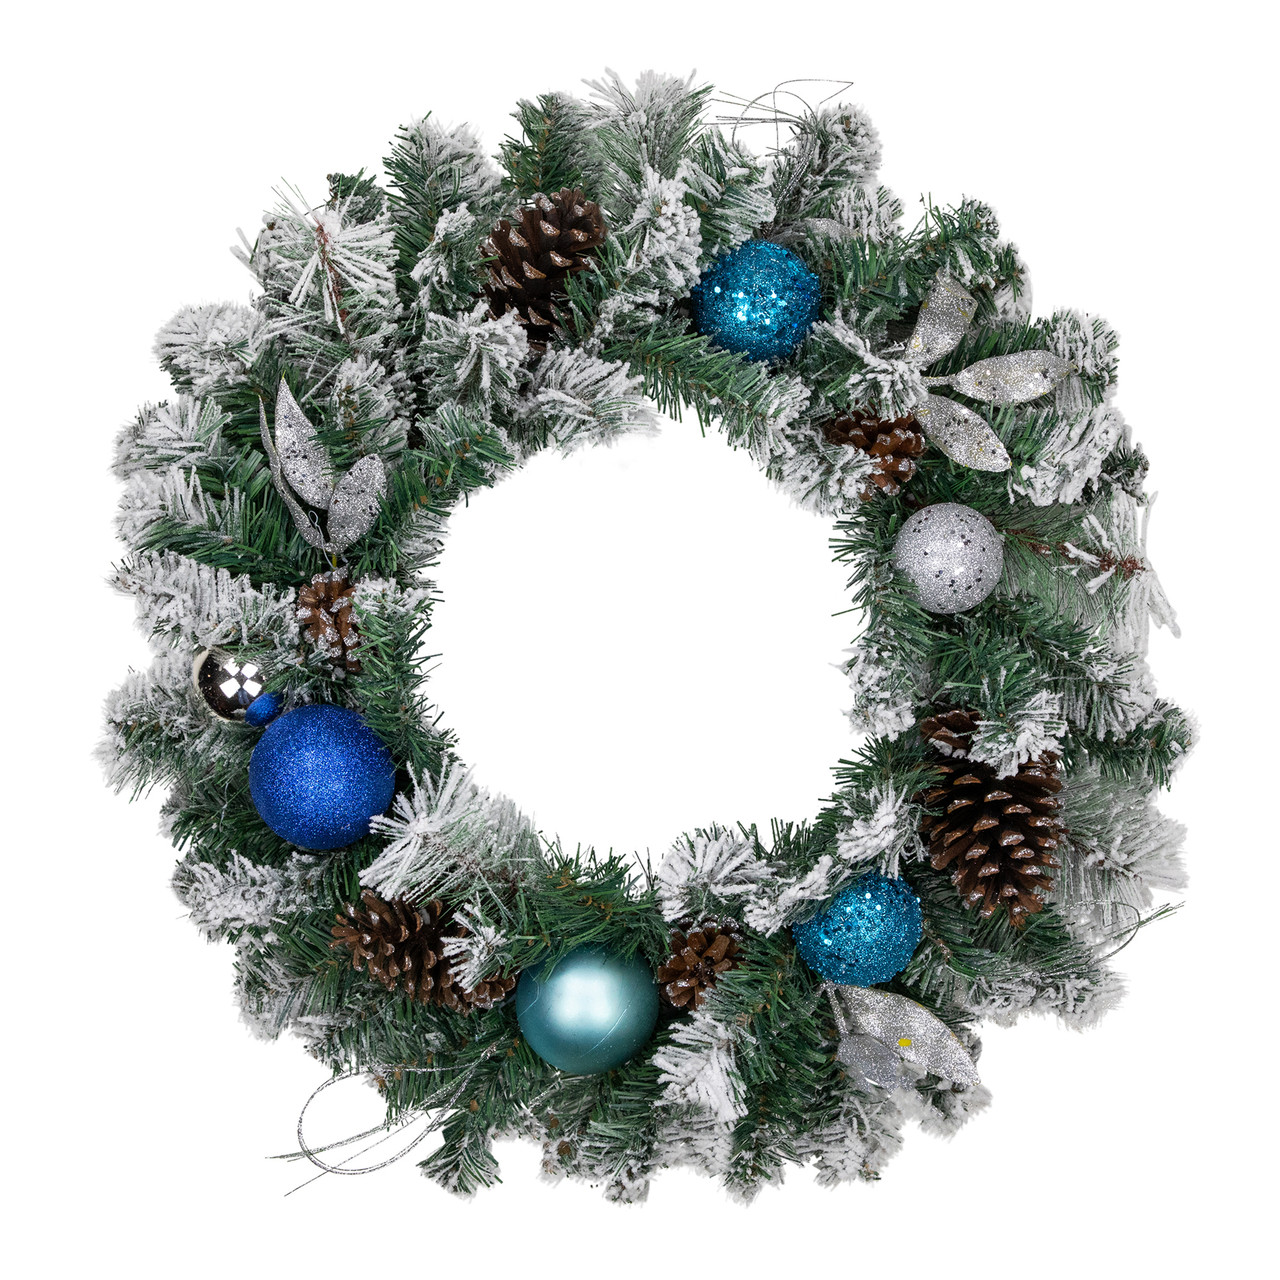 24 teal and silver ornaments artificial flocked pine christmas wreath unlit 32275673 - Teal And Silver Christmas Decorations